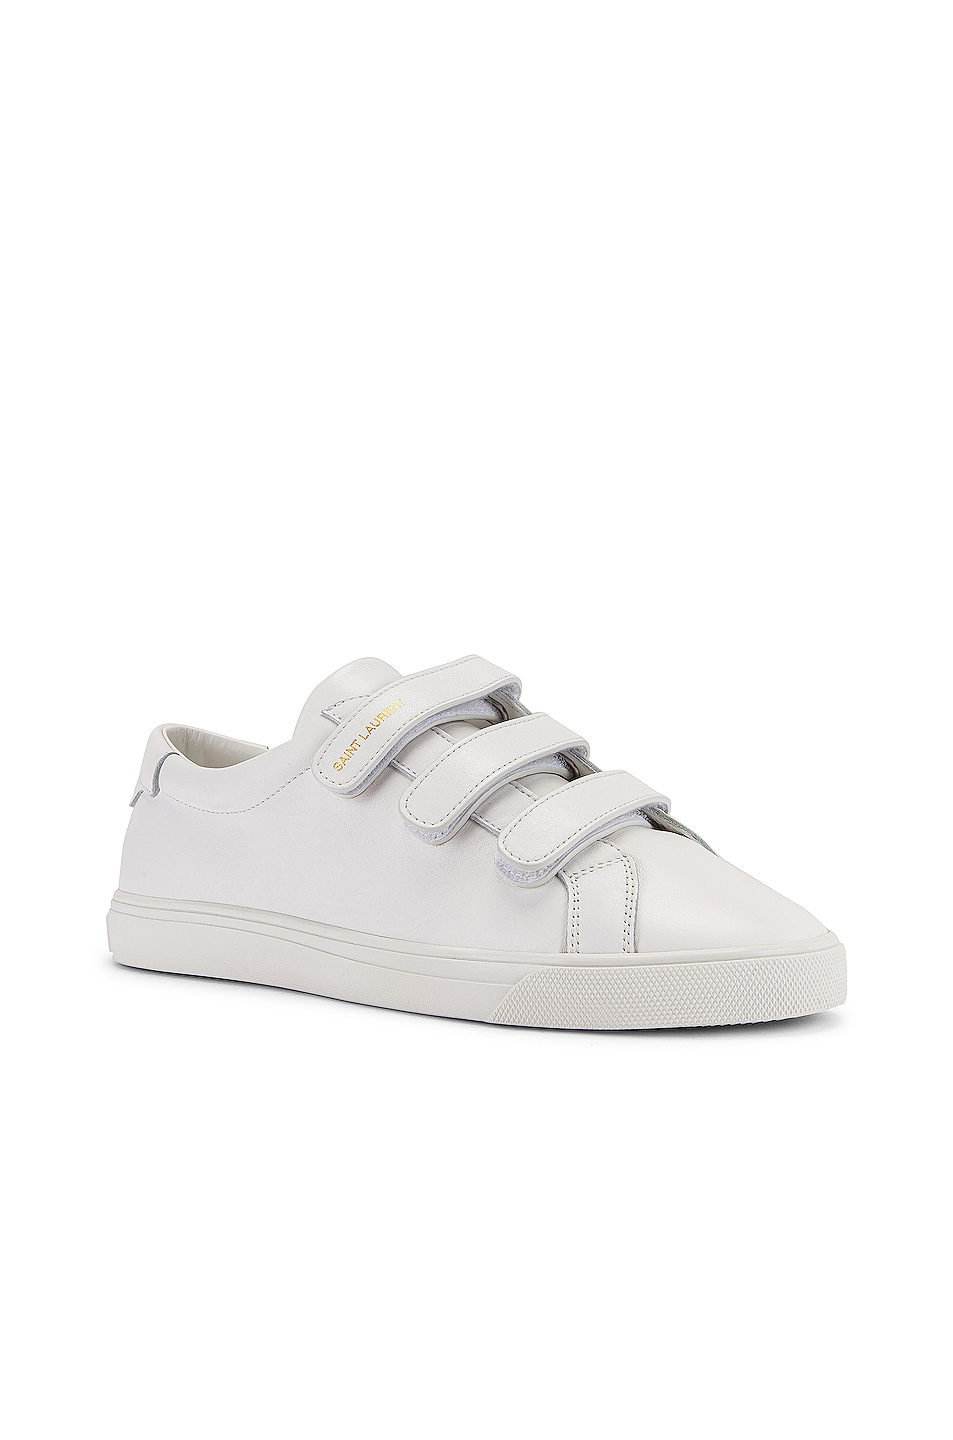 Image 3 of Saint Laurent Andy Velcro Strap Low Top Sneakers in White